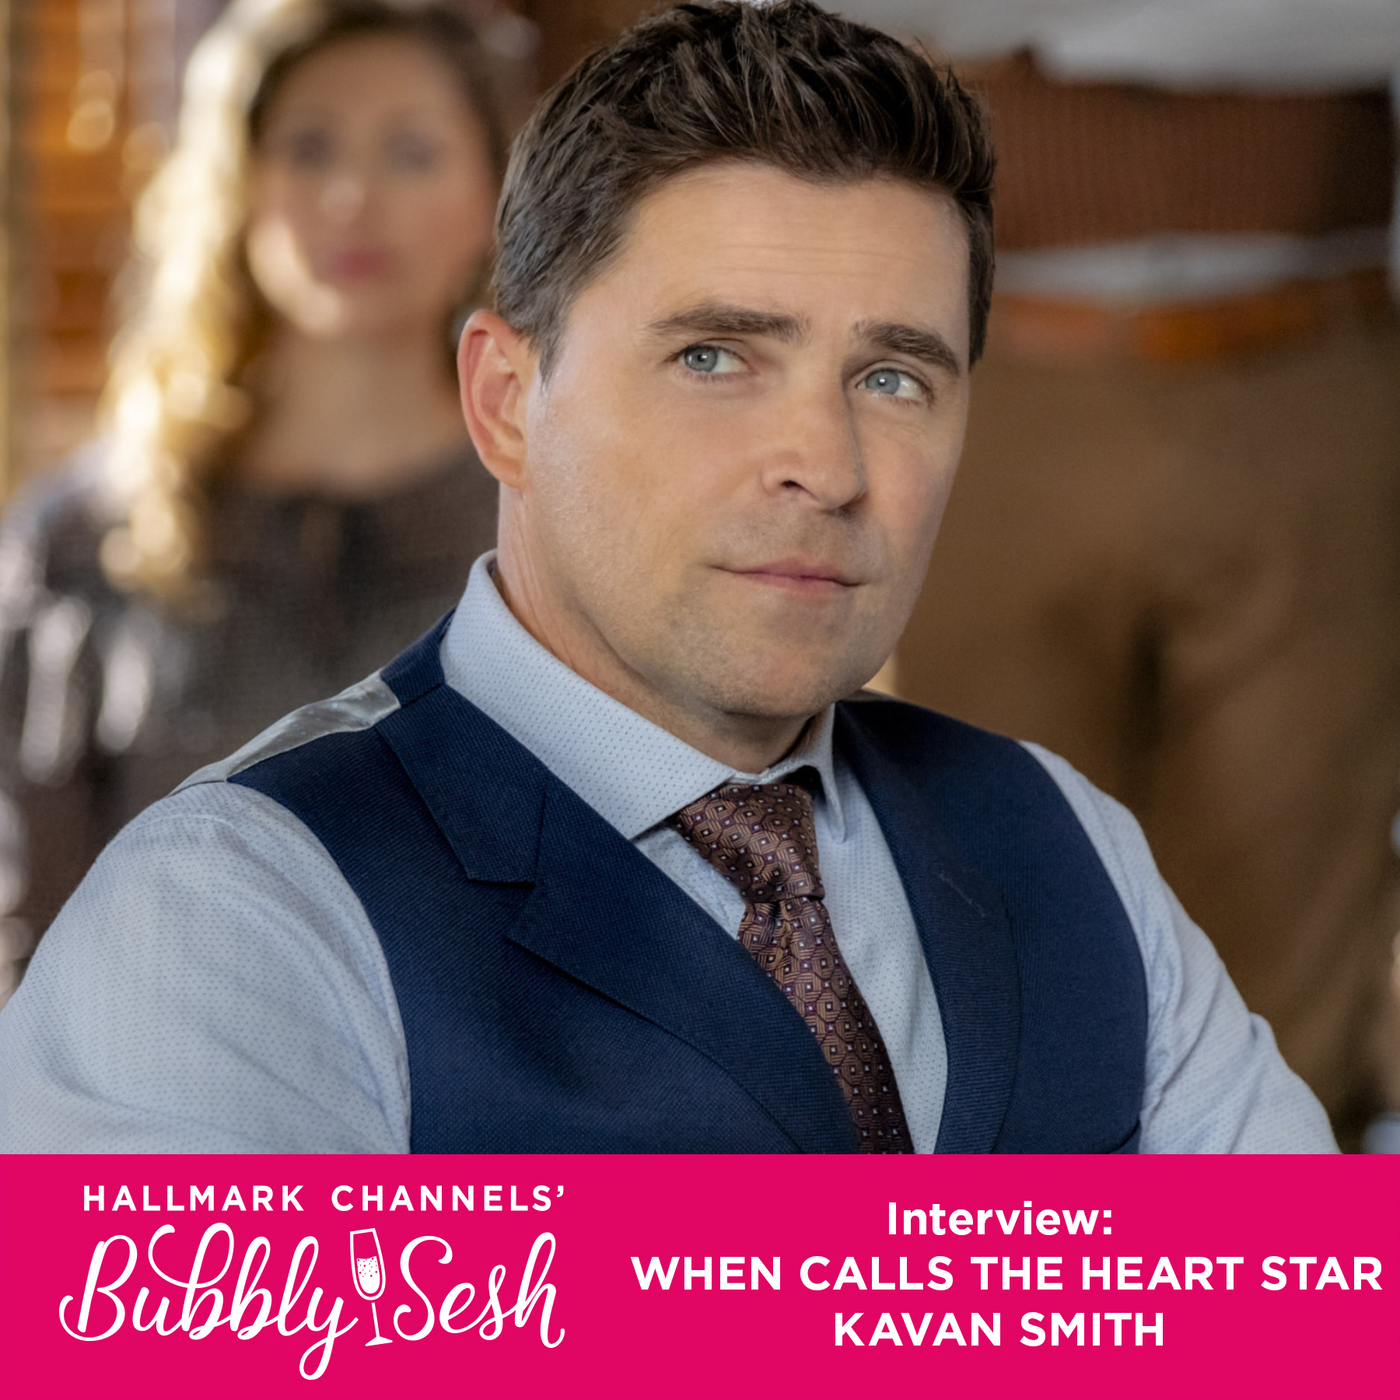 Kavan Smith Interview: When Calls the Heart